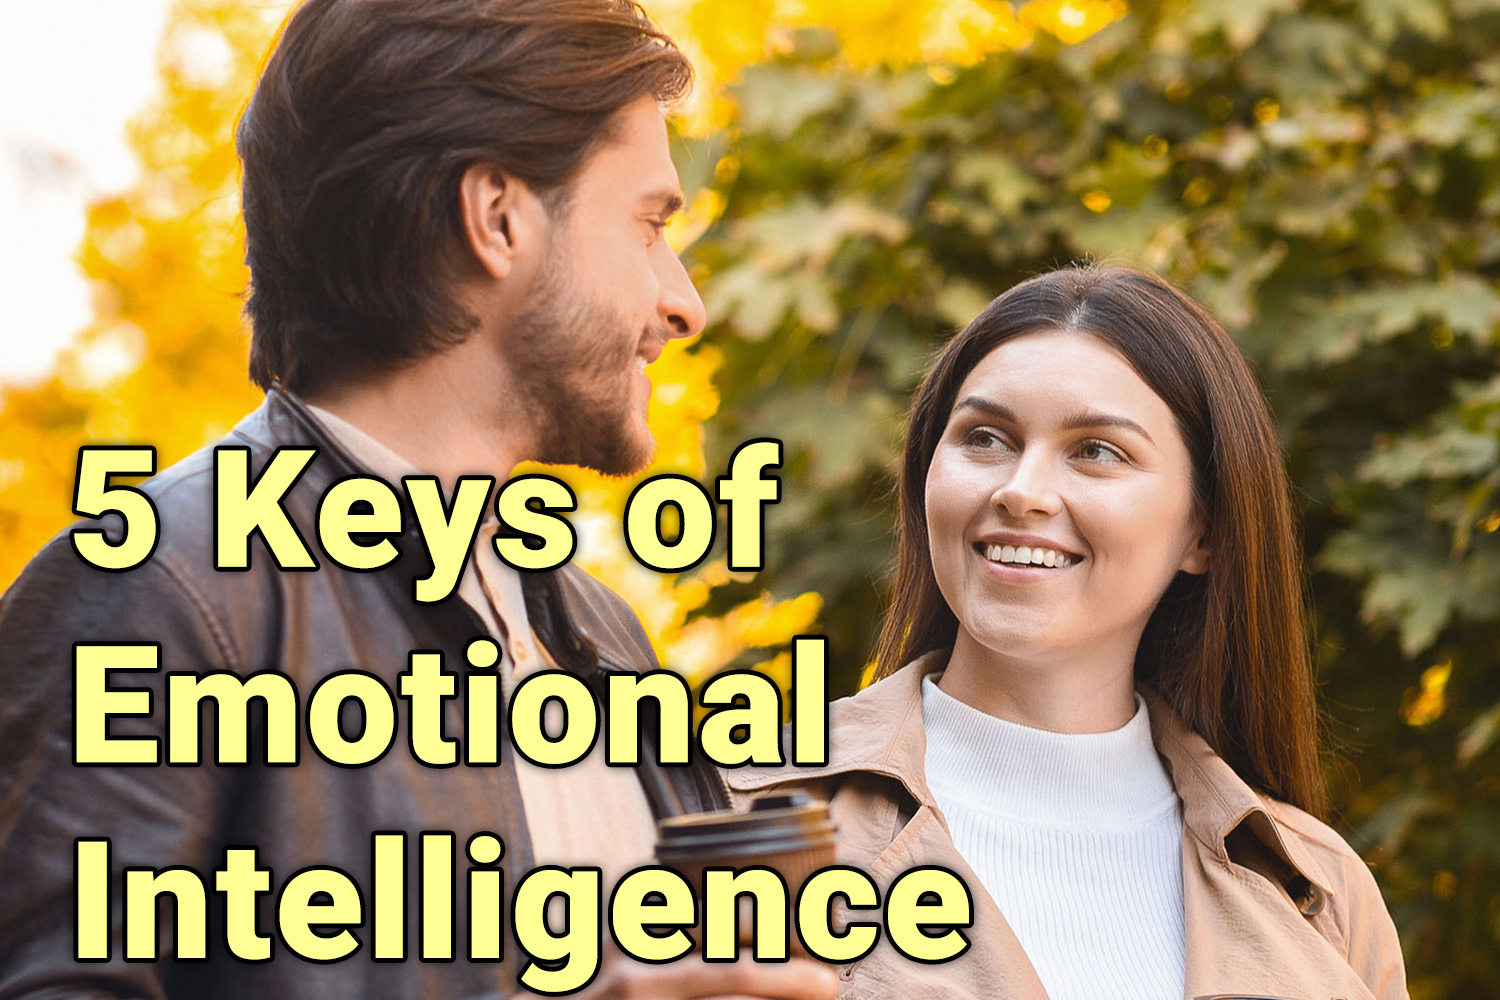 The 5 Keys to EMOTIONAL INTELLIGENCE and Why They Are MORE IMPORTANT Than FINANCIAL INTELLIGENCE